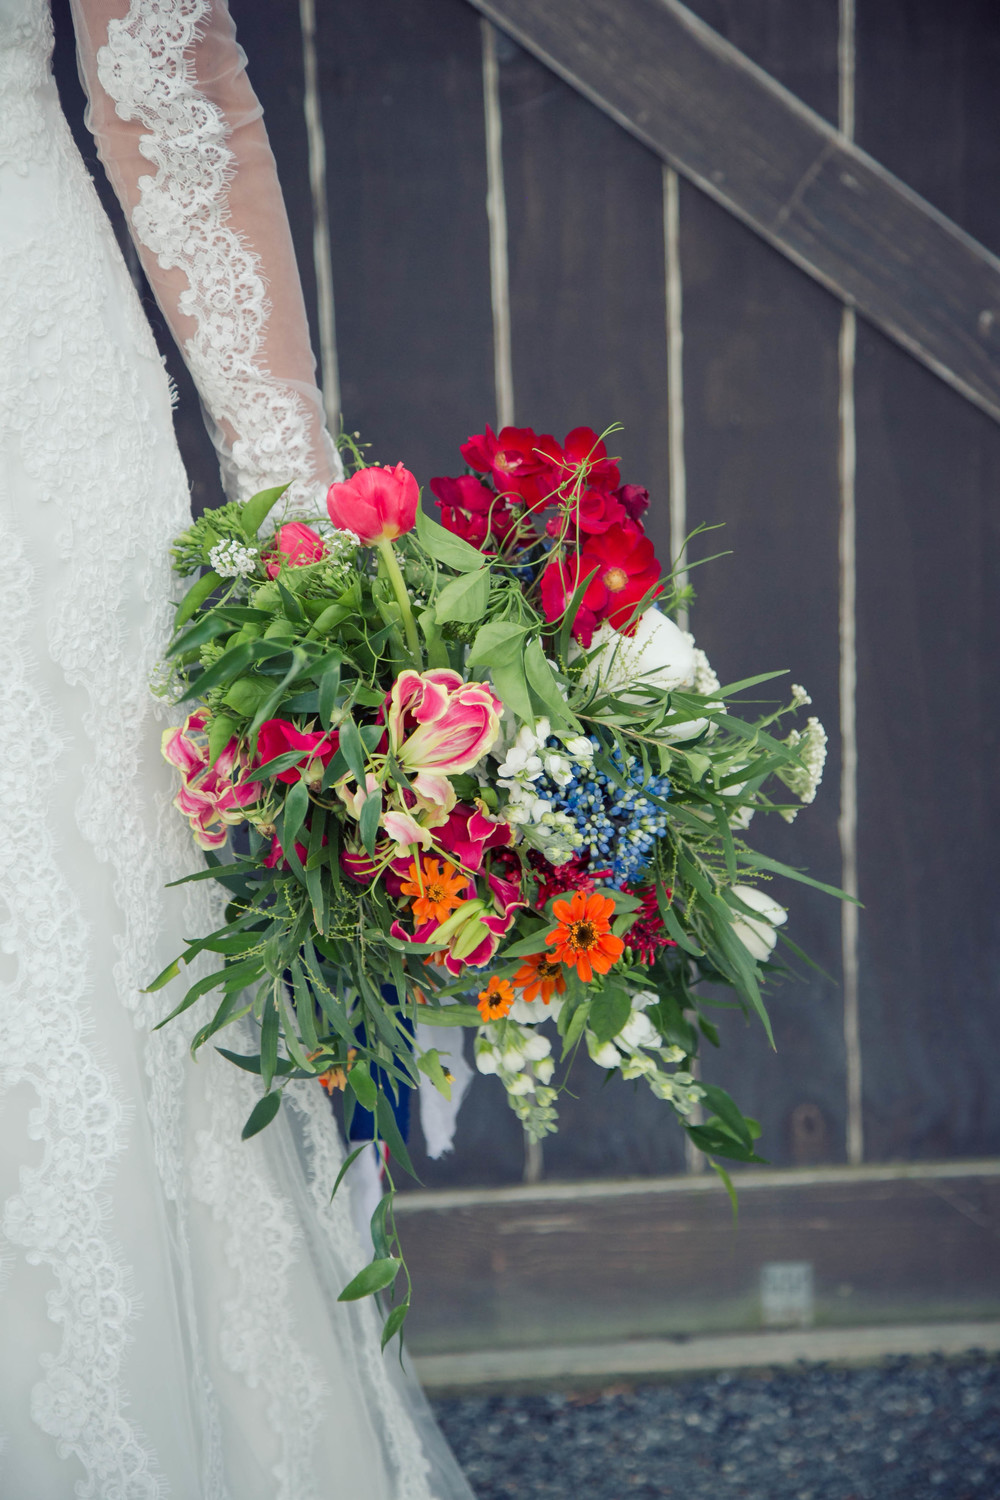 Wedding bouquet - bright and colourful | Dutch wedding shoot | Photography by Tranquility Photography | Gown available at Astra Bridal | www.borrowedandblue.kiwi